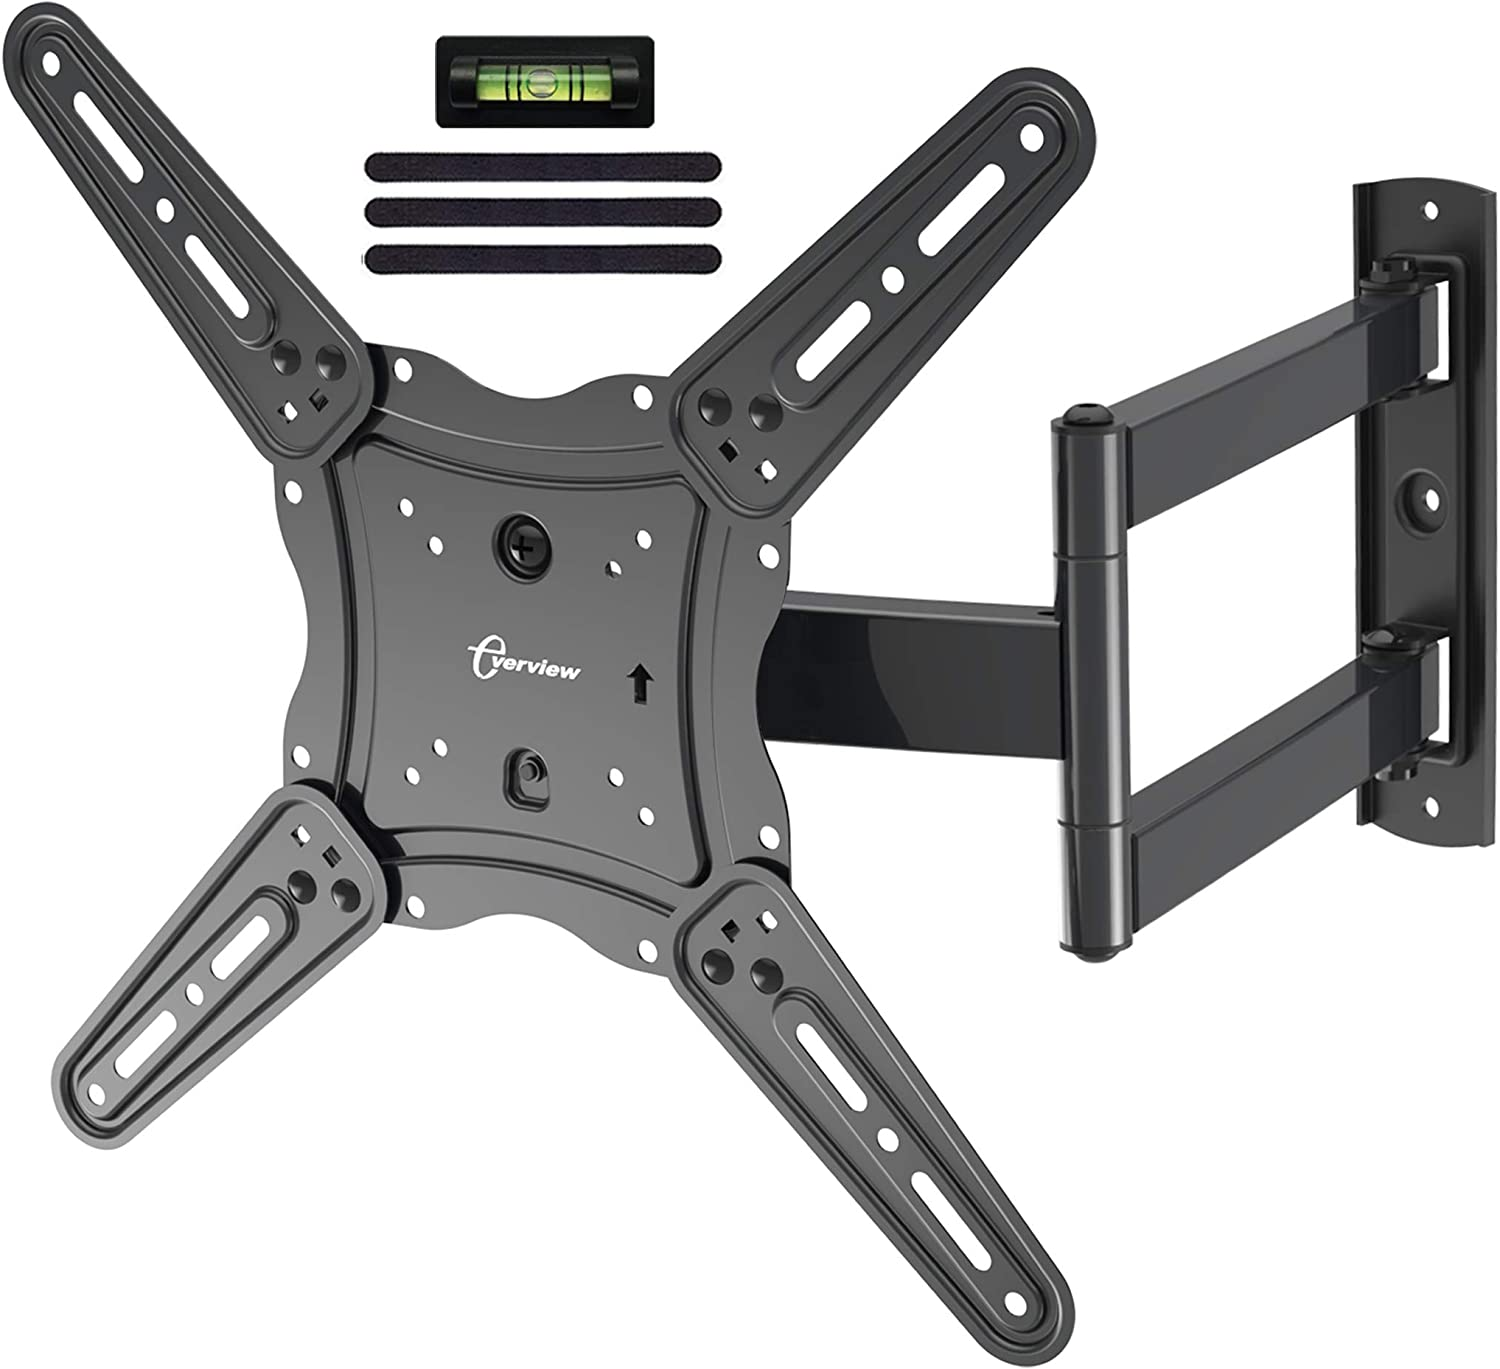 Tv Wall Mount Bracket Fits To Most 26 55 Inch Led Lcd Oled Flat Panel Tvs Tilt Full Motion Swivel Articulating Arms Tv Bracket Vesa 400x400 77lbs Loading With Hdmi Cable Cable Ties Everview Amazon Ca Electronics